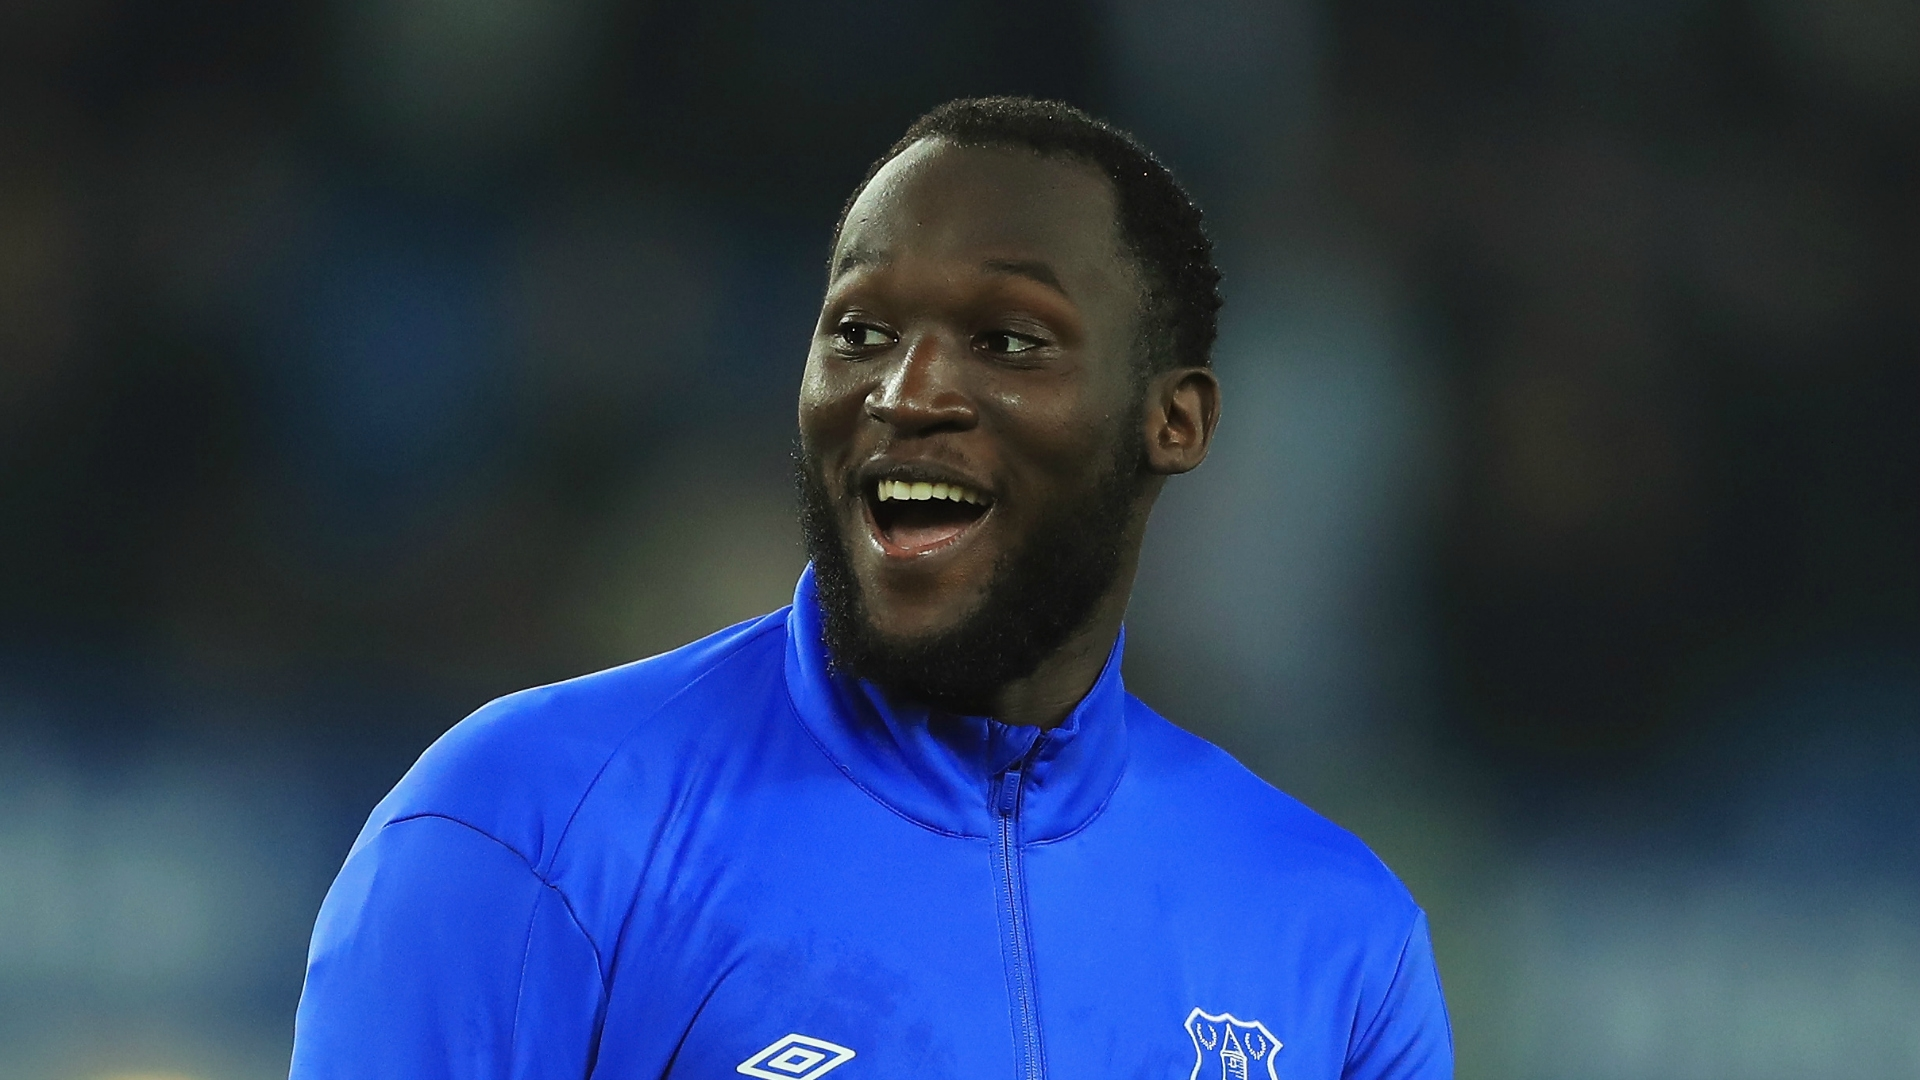 The British press has been going wild over the claim that Everton's Lukaku may have come to an agreement with Manchester Unite